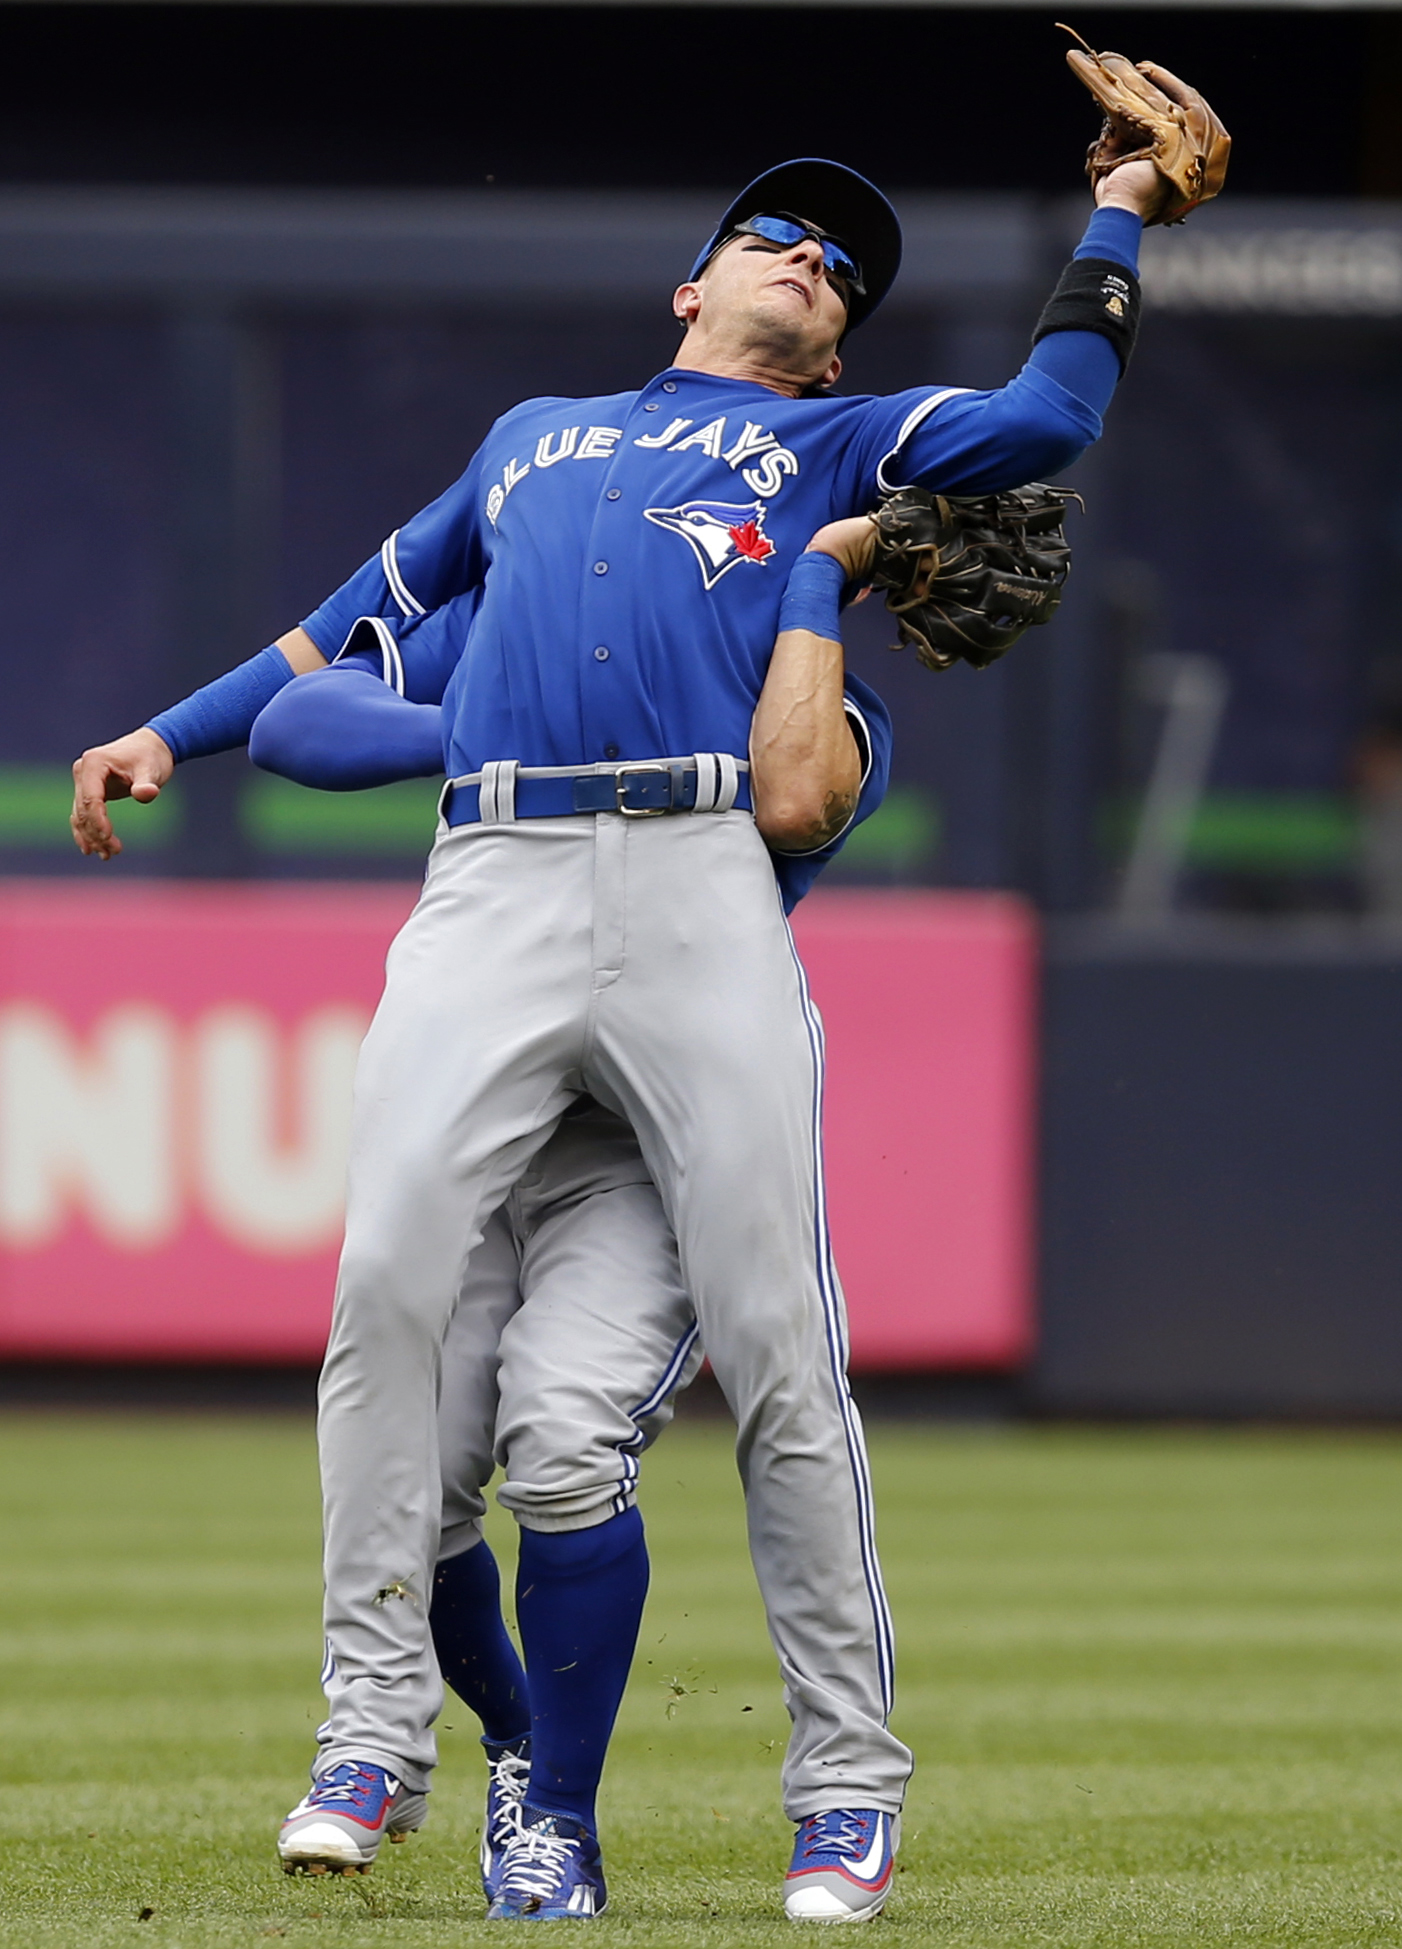 Toronto Blue Jays shortstop Troy Tulowitzki, foreground, collides with Blue Jays center fielder Kevin Pillar fielding a fly ball in a baseball game at Yankee Stadium in New York, Saturday, Sept. 12, 2015.  (AP Photo/Kathy Willens)